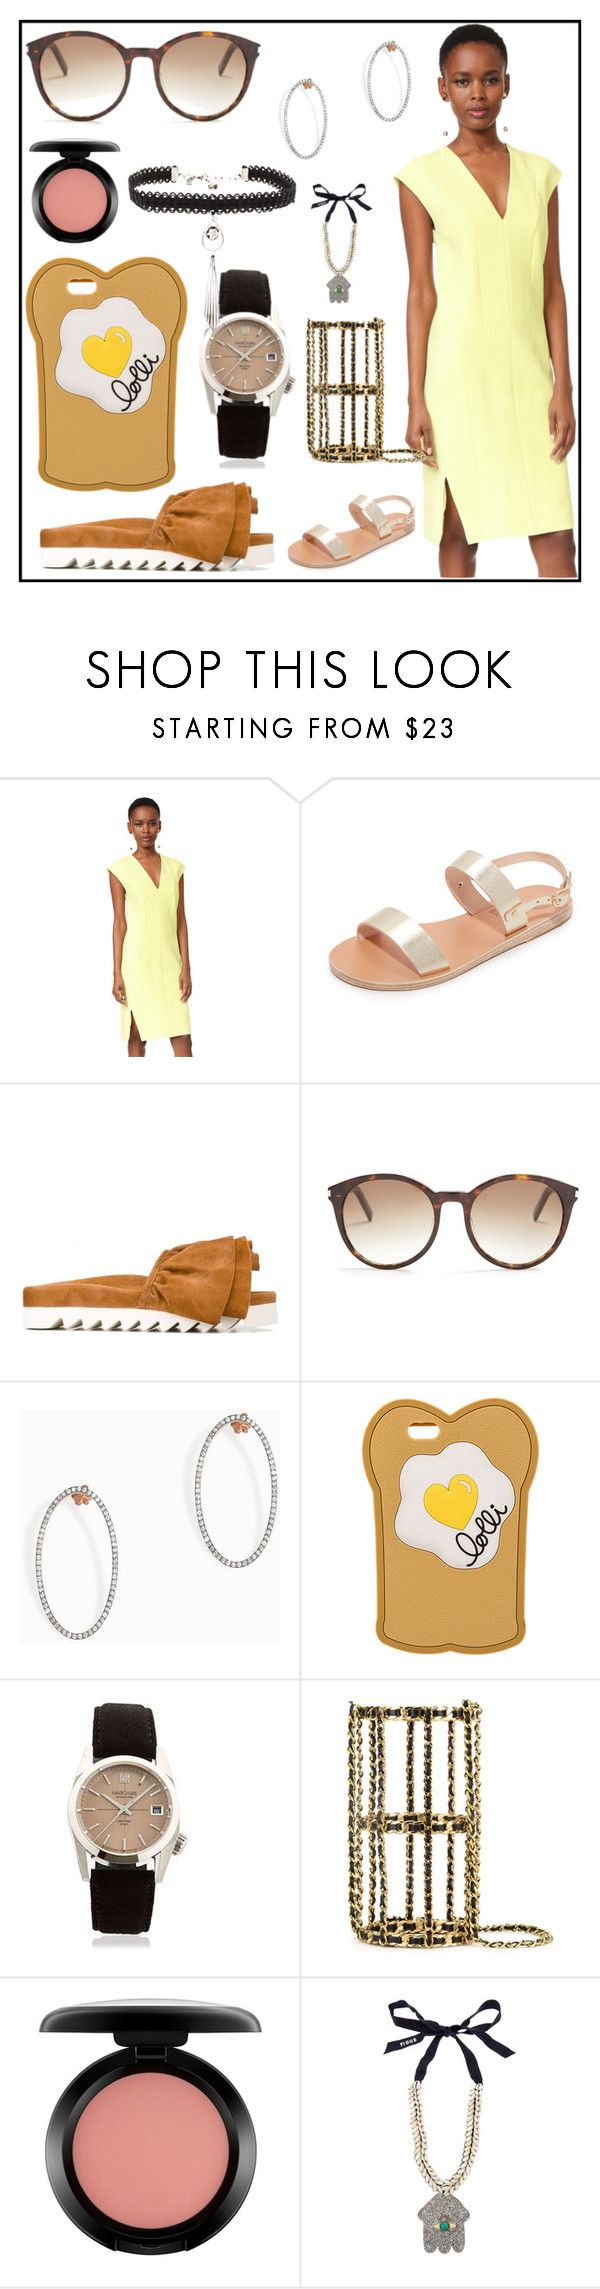 """""""Your style and your store"""" by denisee-denisee ❤ liked on Polyvore featuring Narciso Rodriguez, Ancient Greek Sandals, Joshua's, Yves Saint Laurent, MAHA LOZI, Lolli, March LA.B, Chanel, MAC Cosmetics and Figue"""